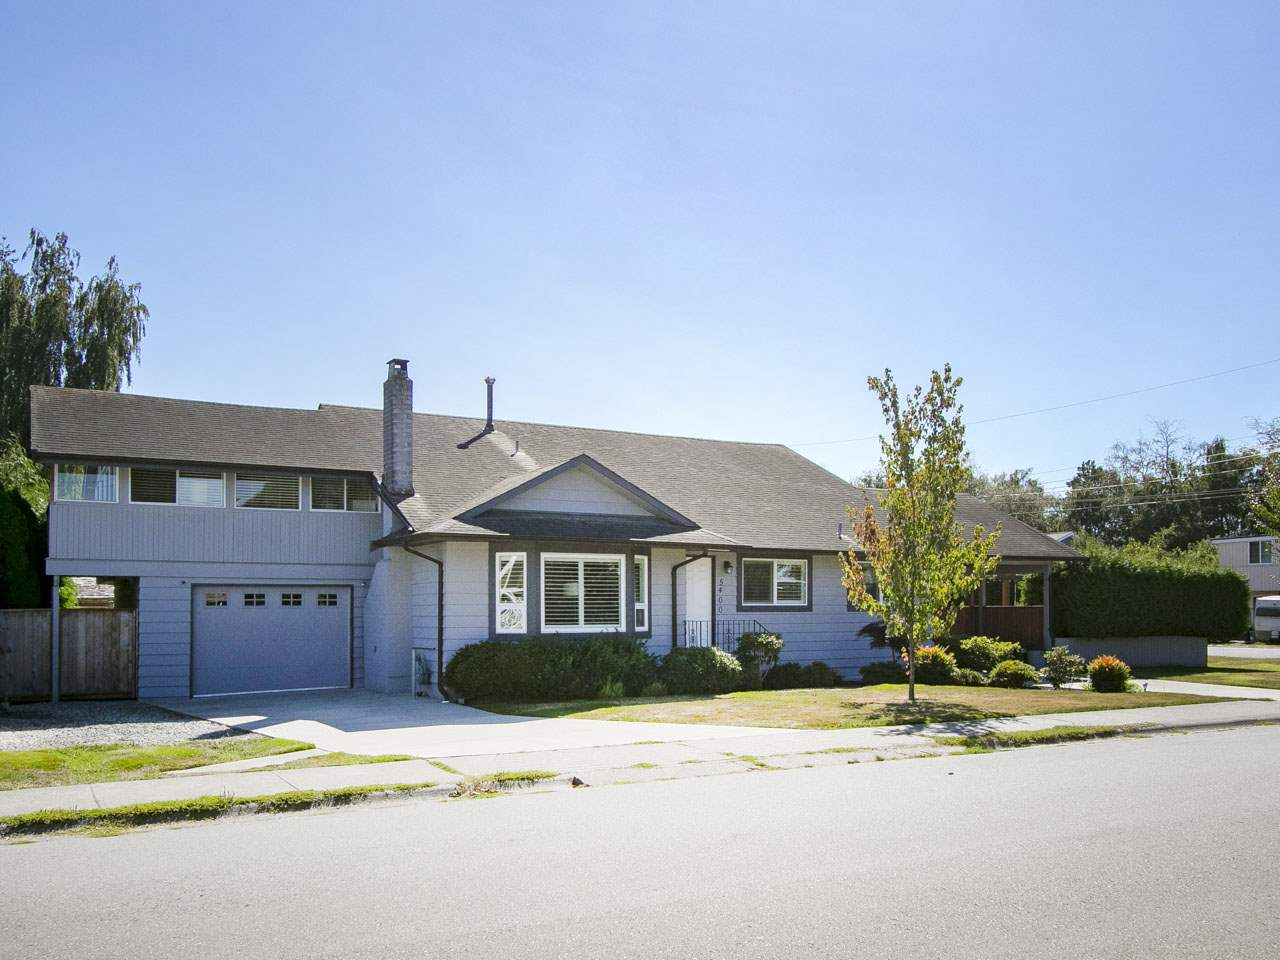 Main Photo: 5400 45 Avenue in Delta: Delta Manor House for sale (Ladner)  : MLS® # R2200512